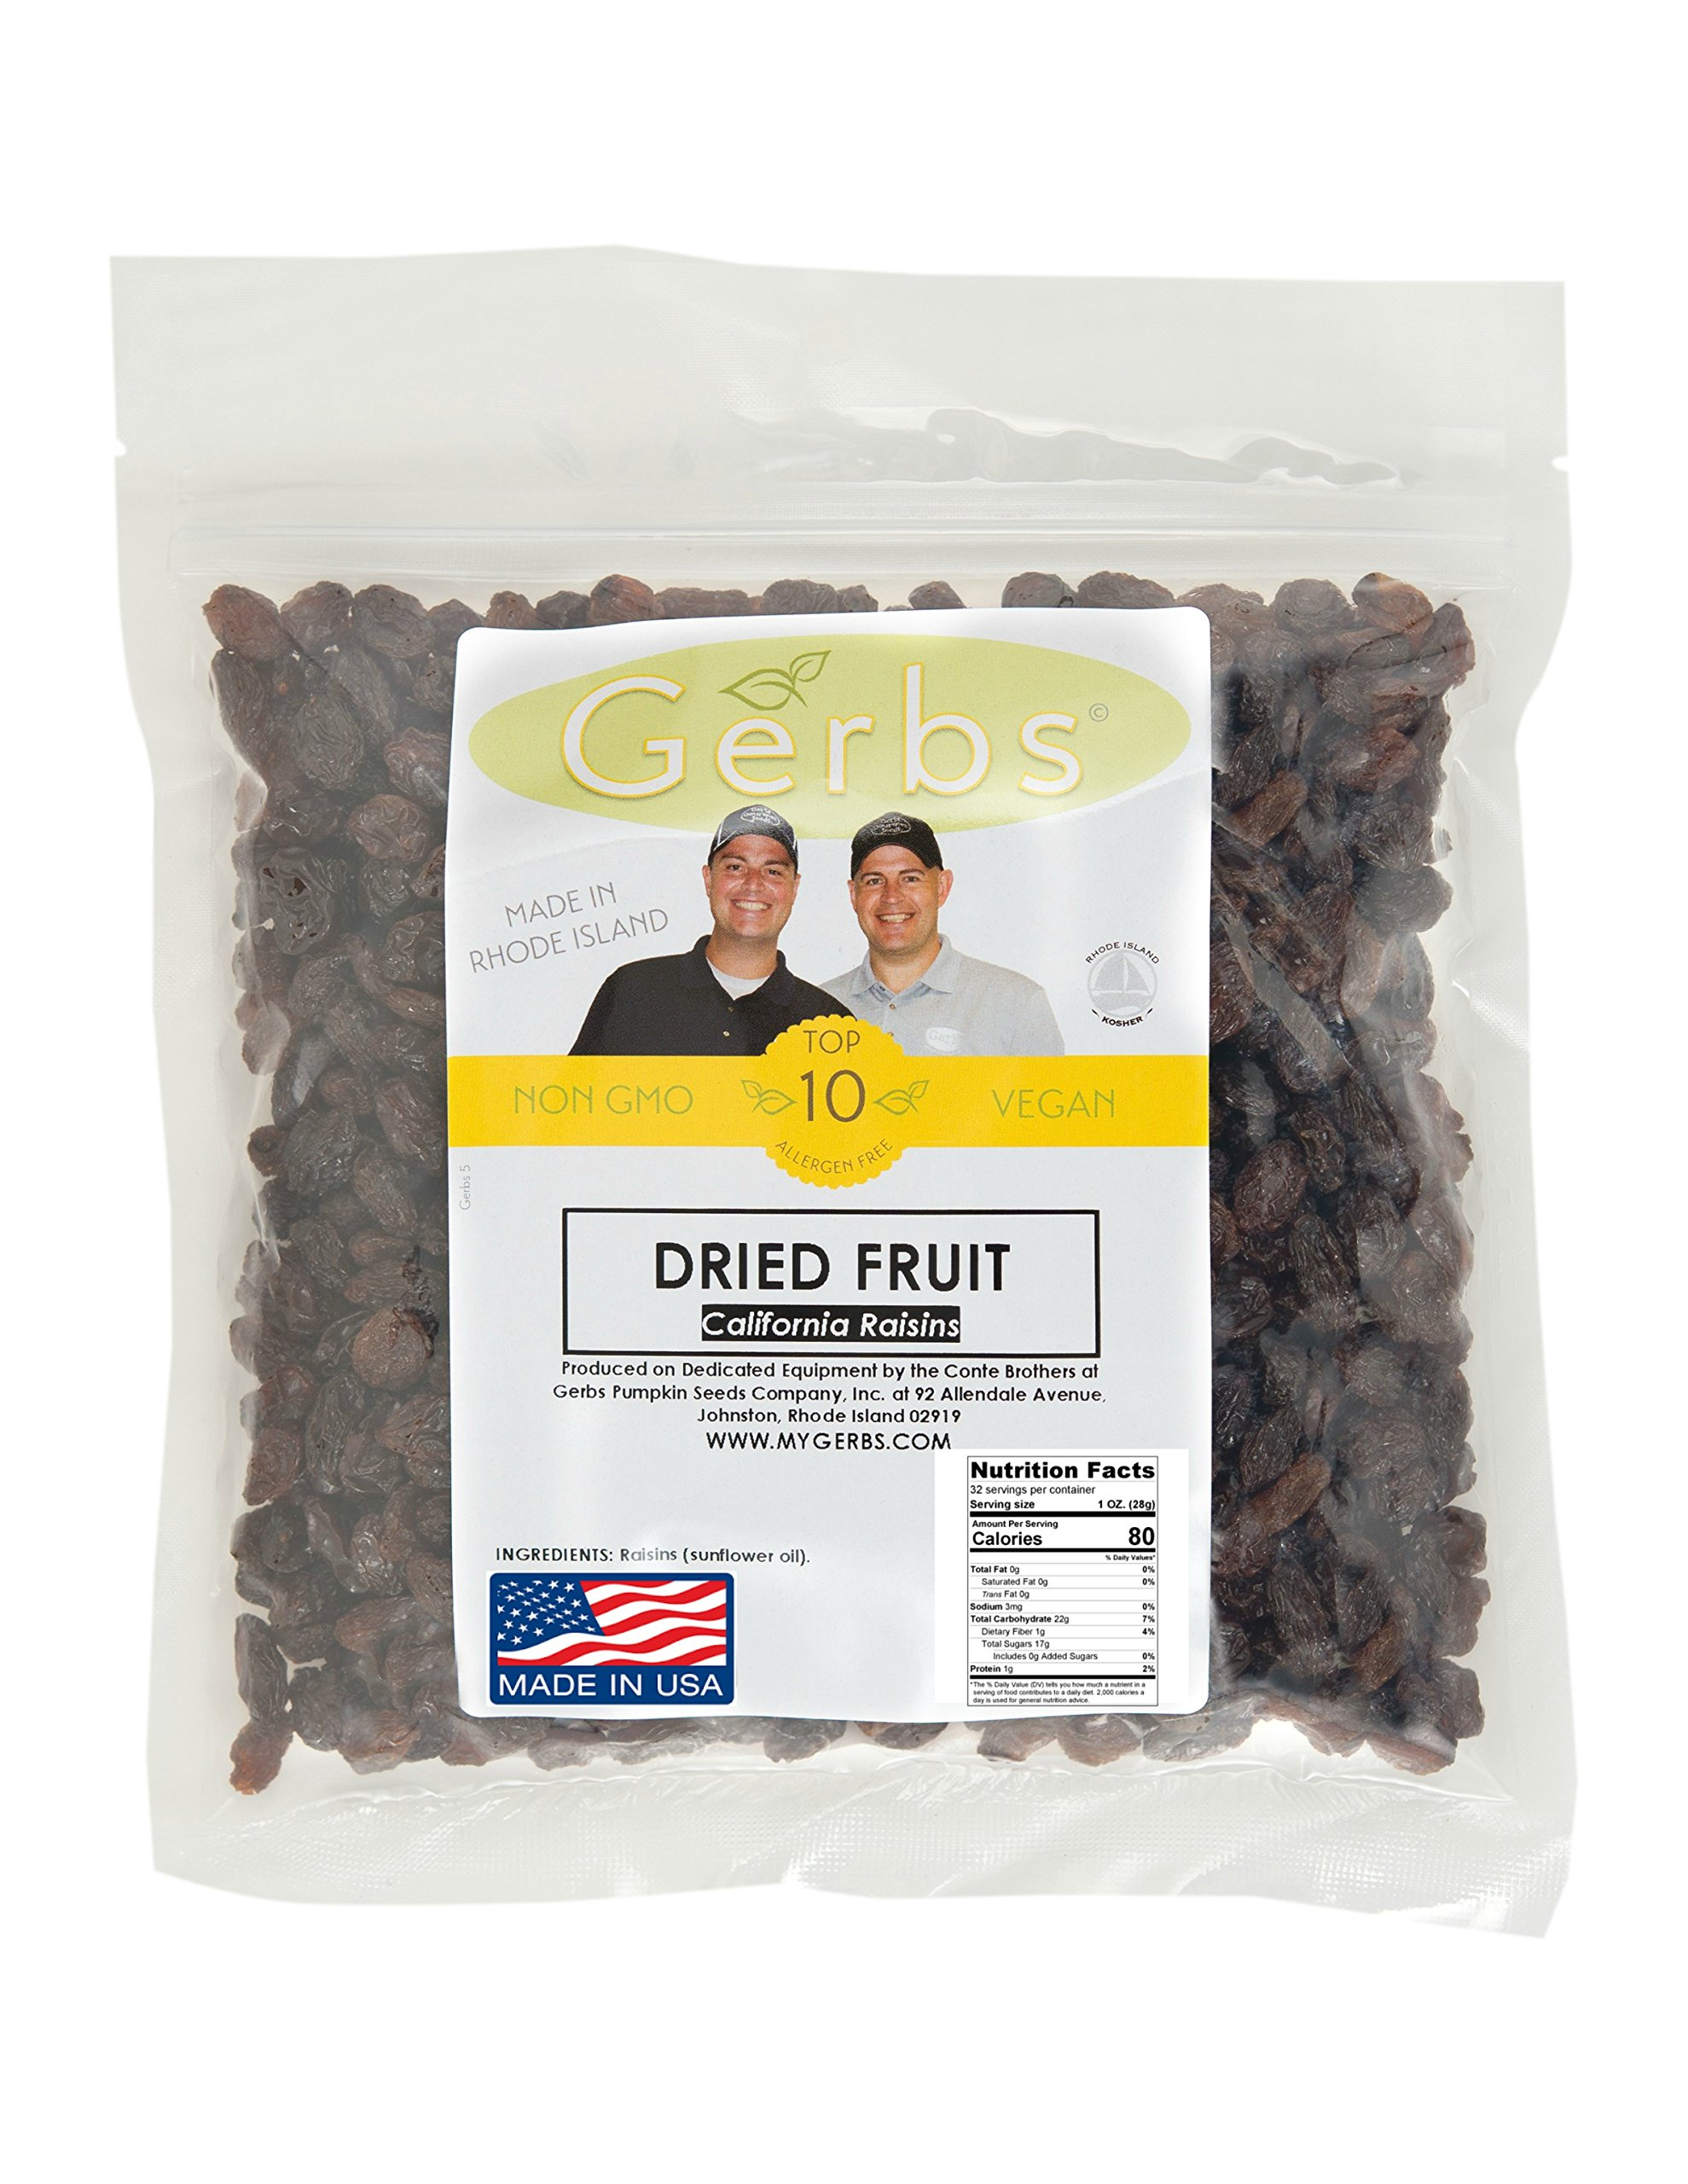 California Raisins, 2 LBS - Preservative Free & Unsulfured by Gerbs - Traditional Size - Top 12 Food Allergy Free & NON GMO – Premium Product of USA